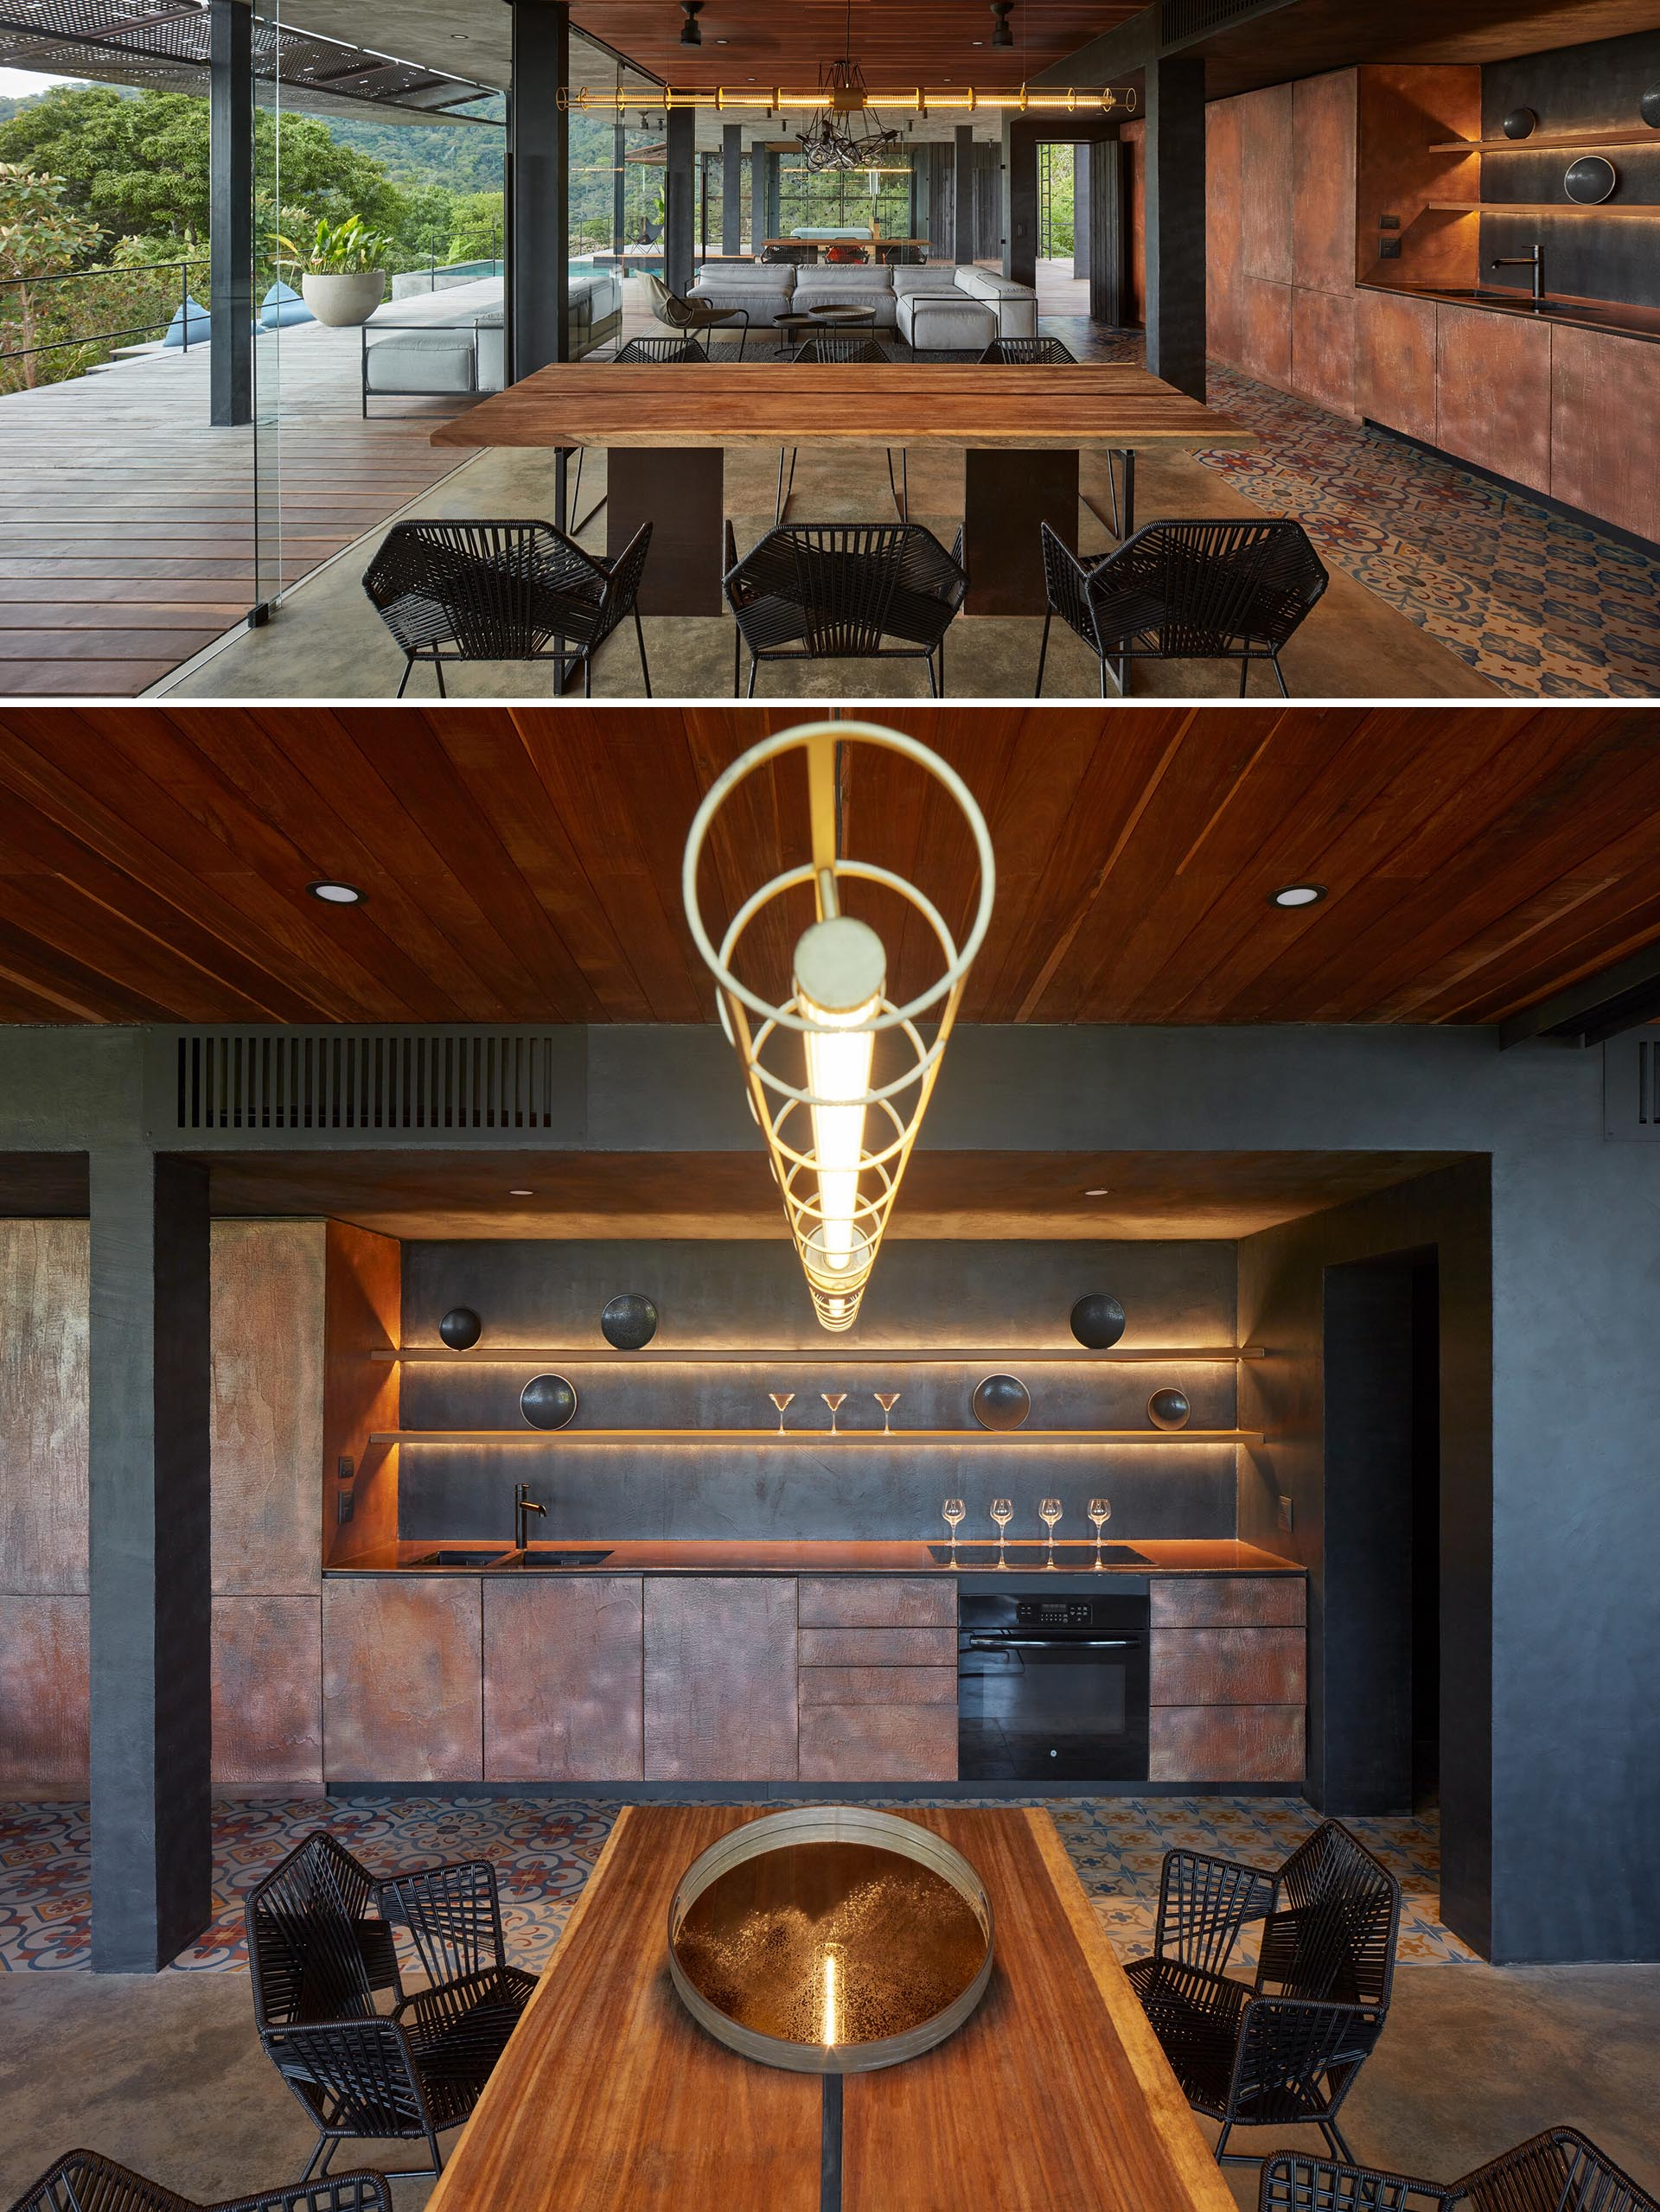 A wood dining table shares an open floor plan with a corten steel kitchen that has backlit shelving.